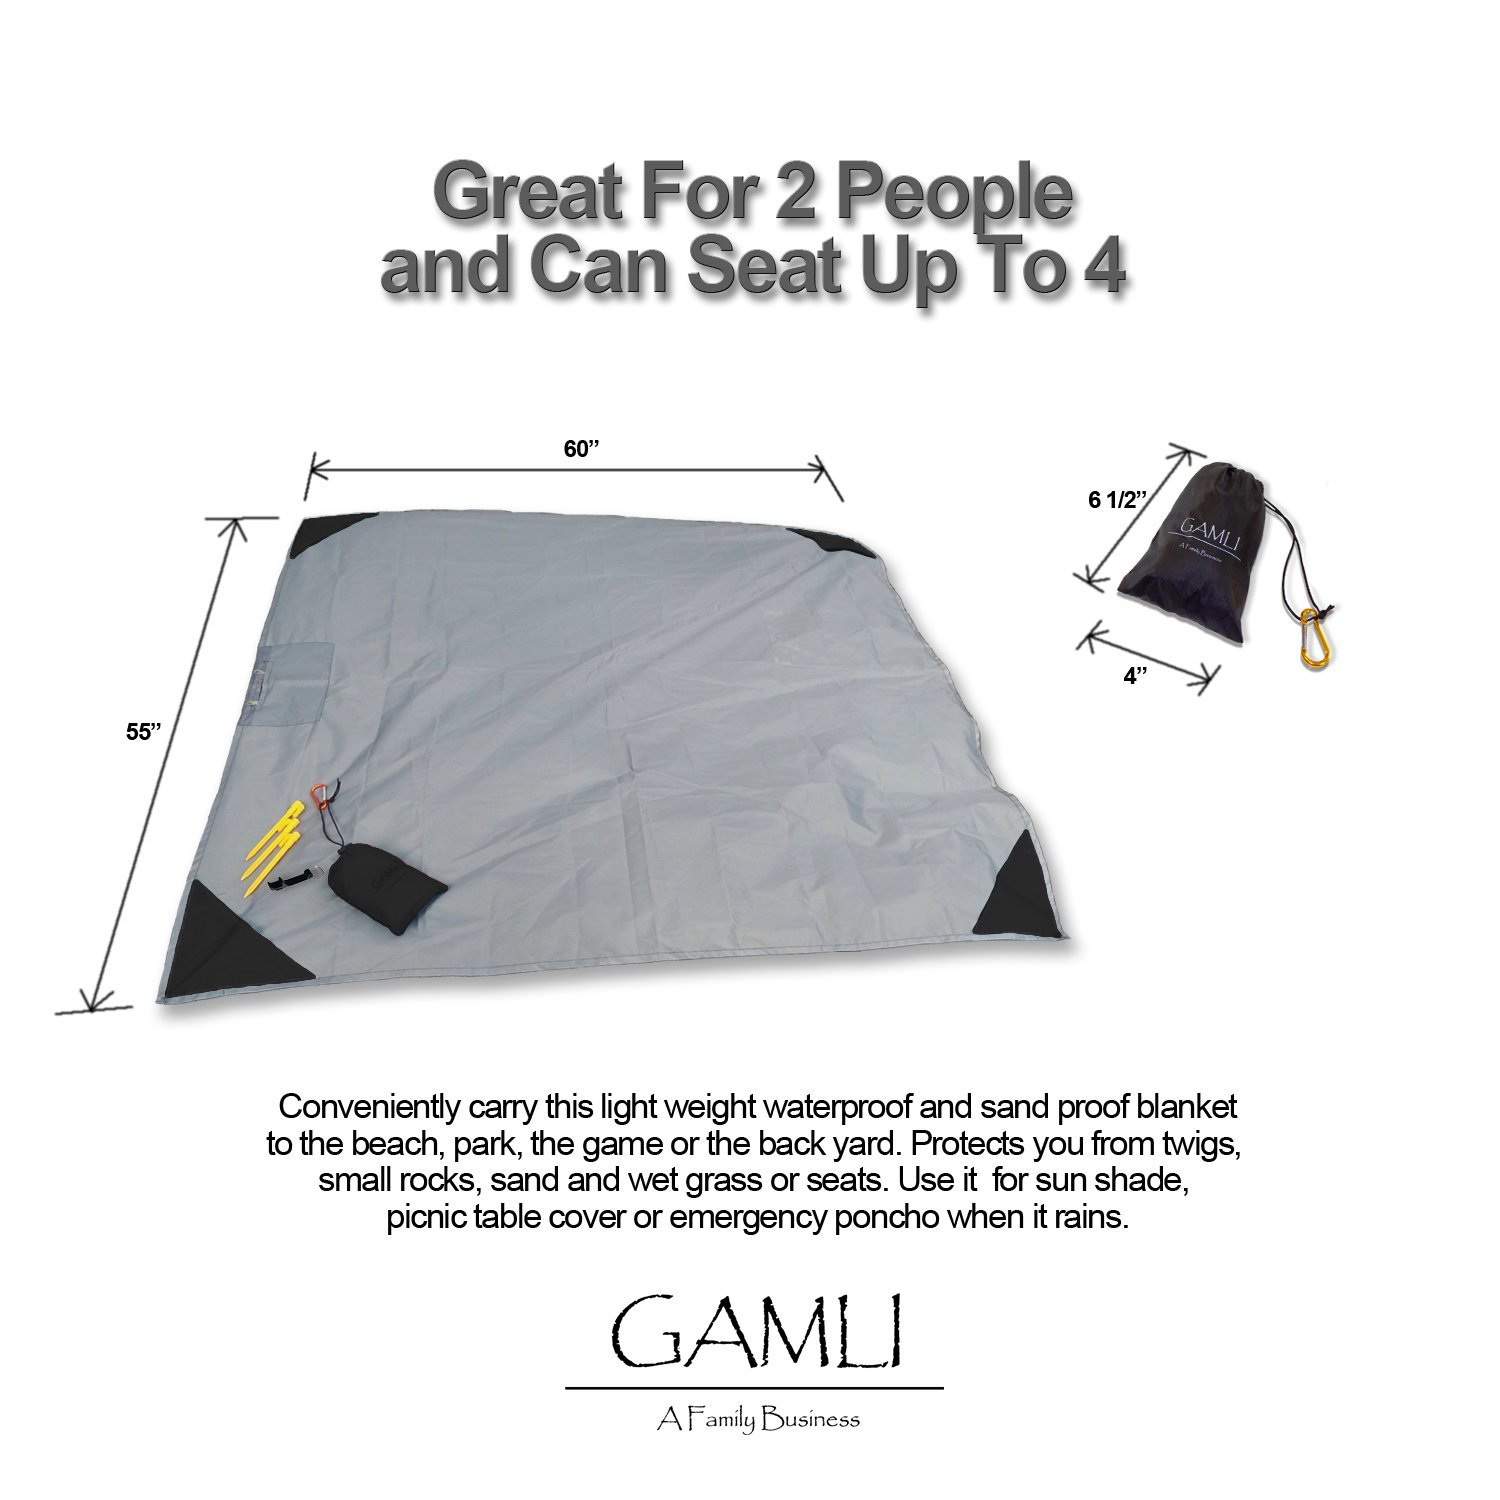 GAMLI A Family Business Black Secure Pocket with Zipper Secure Pocket with Zipper Loops Camping Hiking Compact Size 55x60 Fit 4 People 4 Stakes Pocket Blanket for Beach Festival Sand and Waterproof Puncture Resistance with Corner Pocket